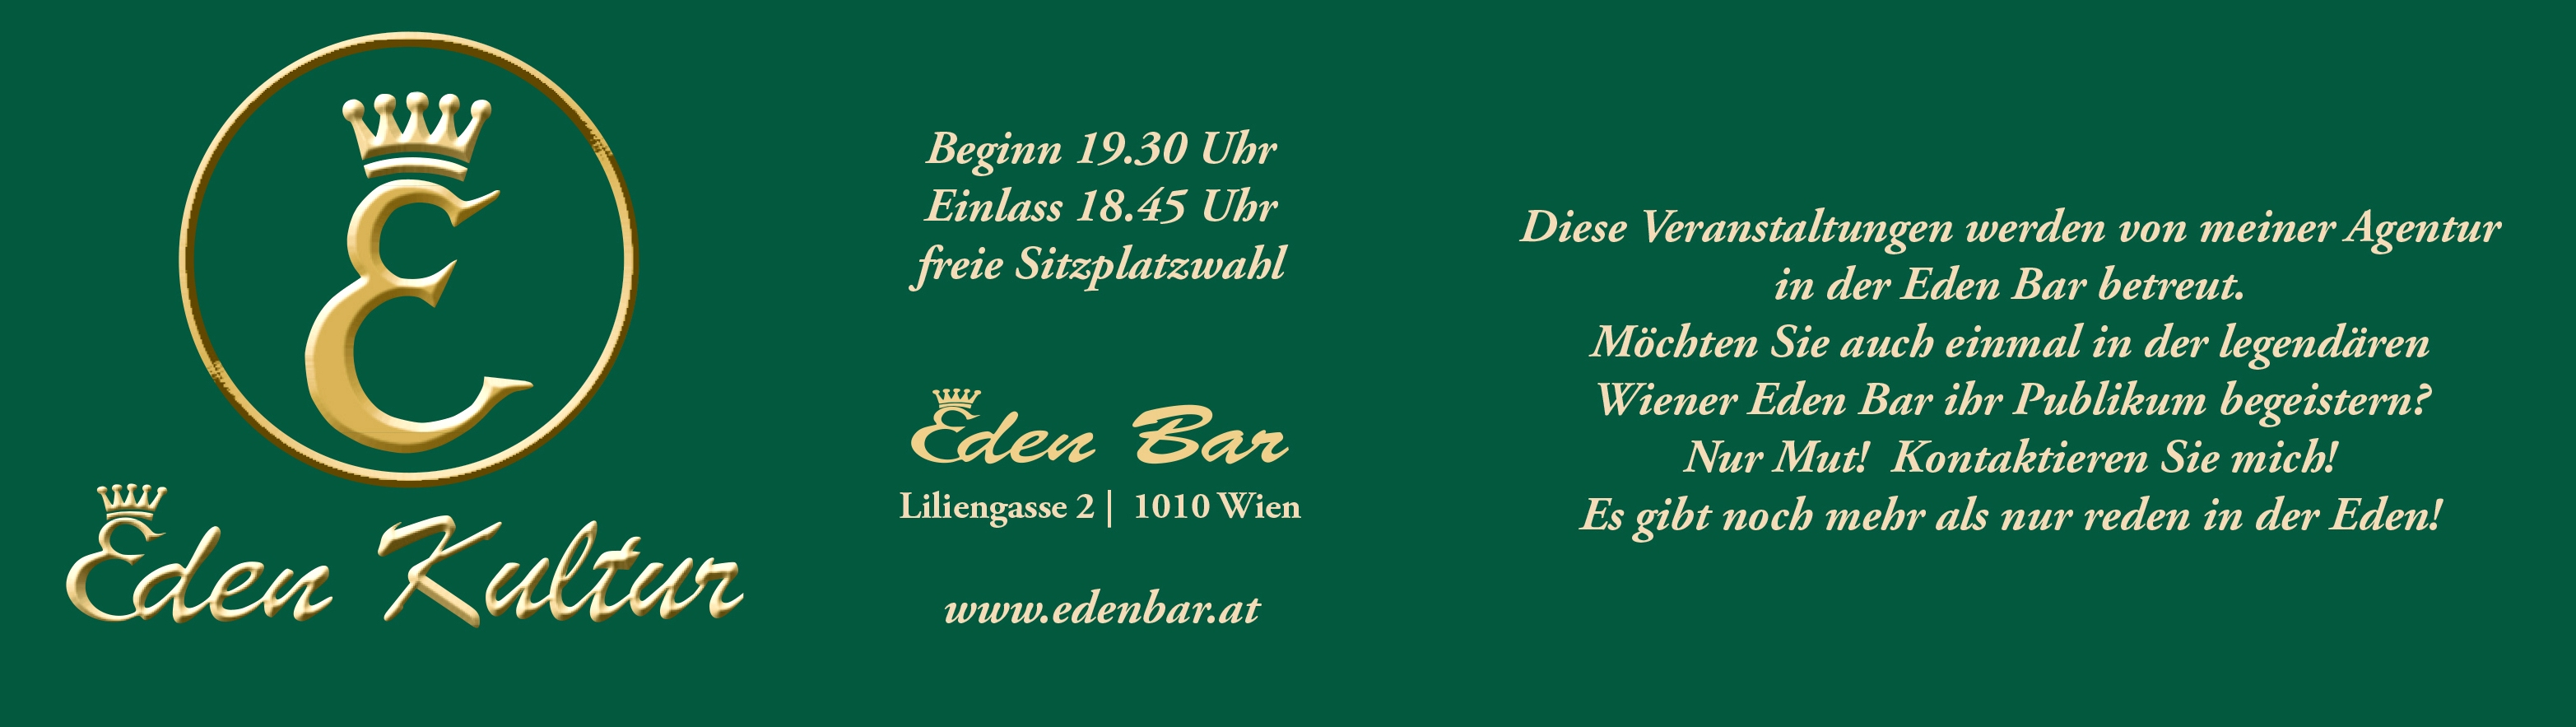 Agentur Taberhofer - EDEN BAR